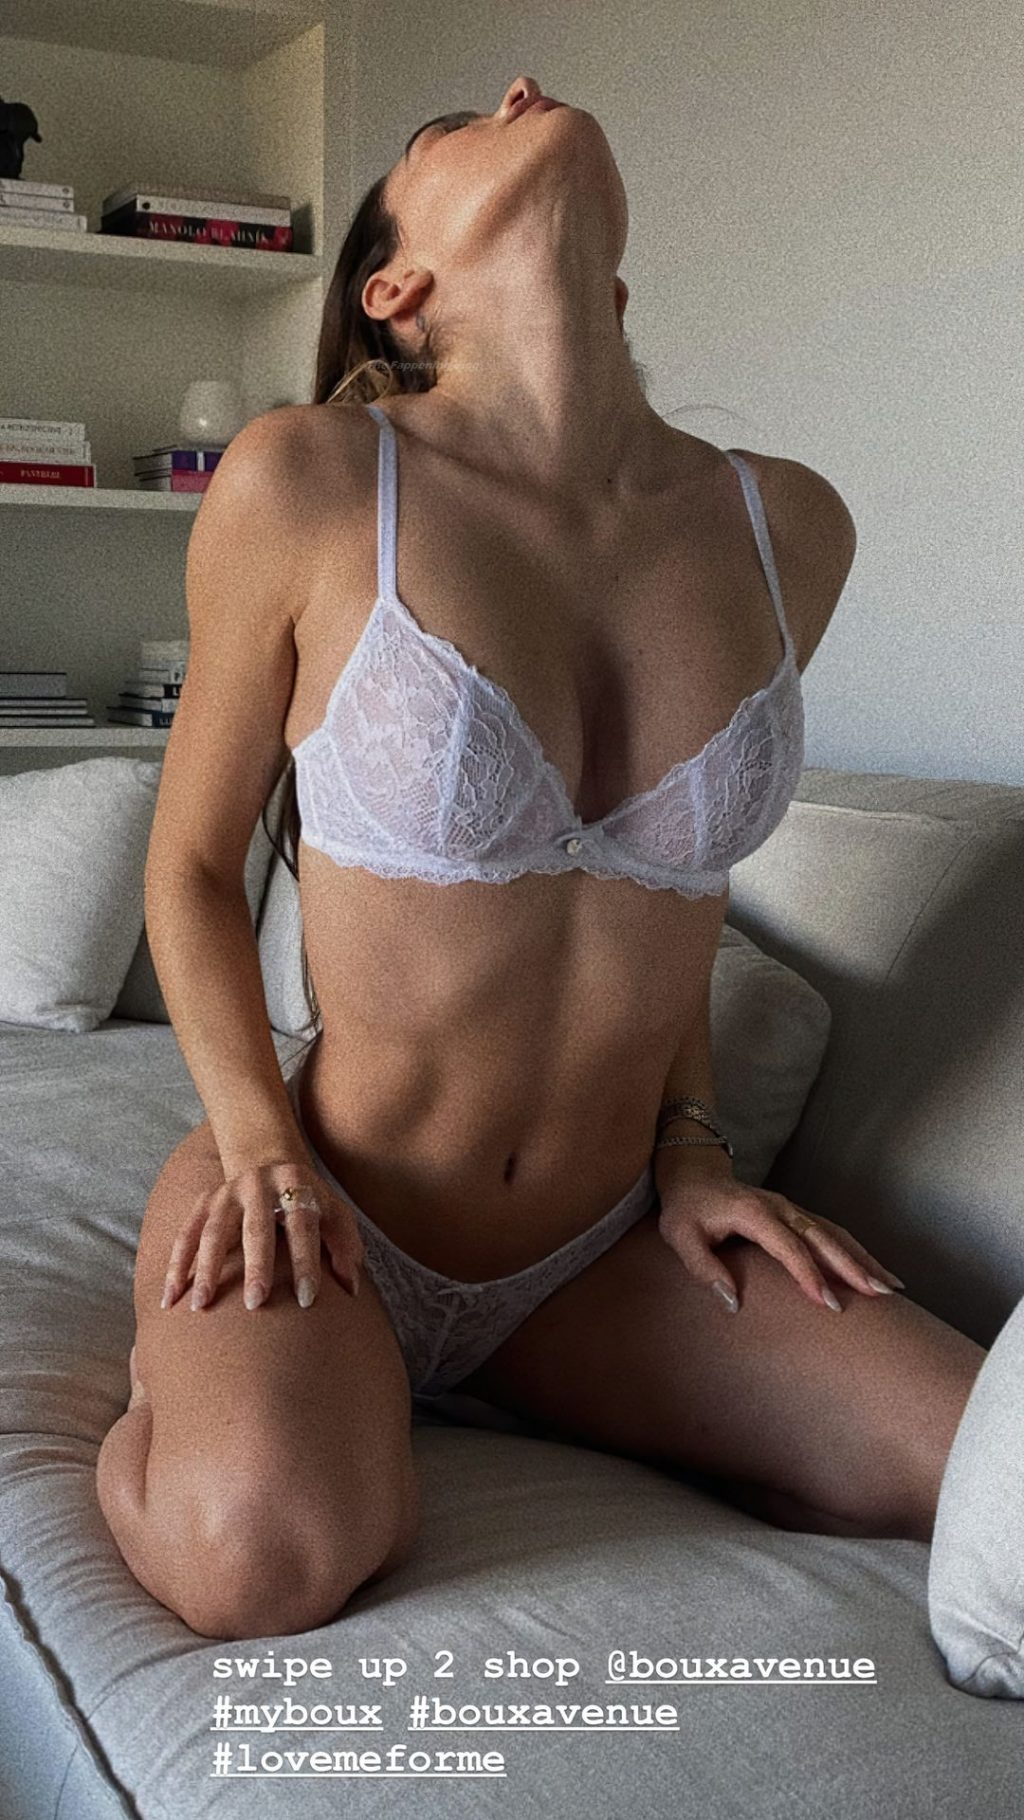 Amelia Gray Hamlin Shows Her Tits and Pussy in Lingerie (8 Photos)